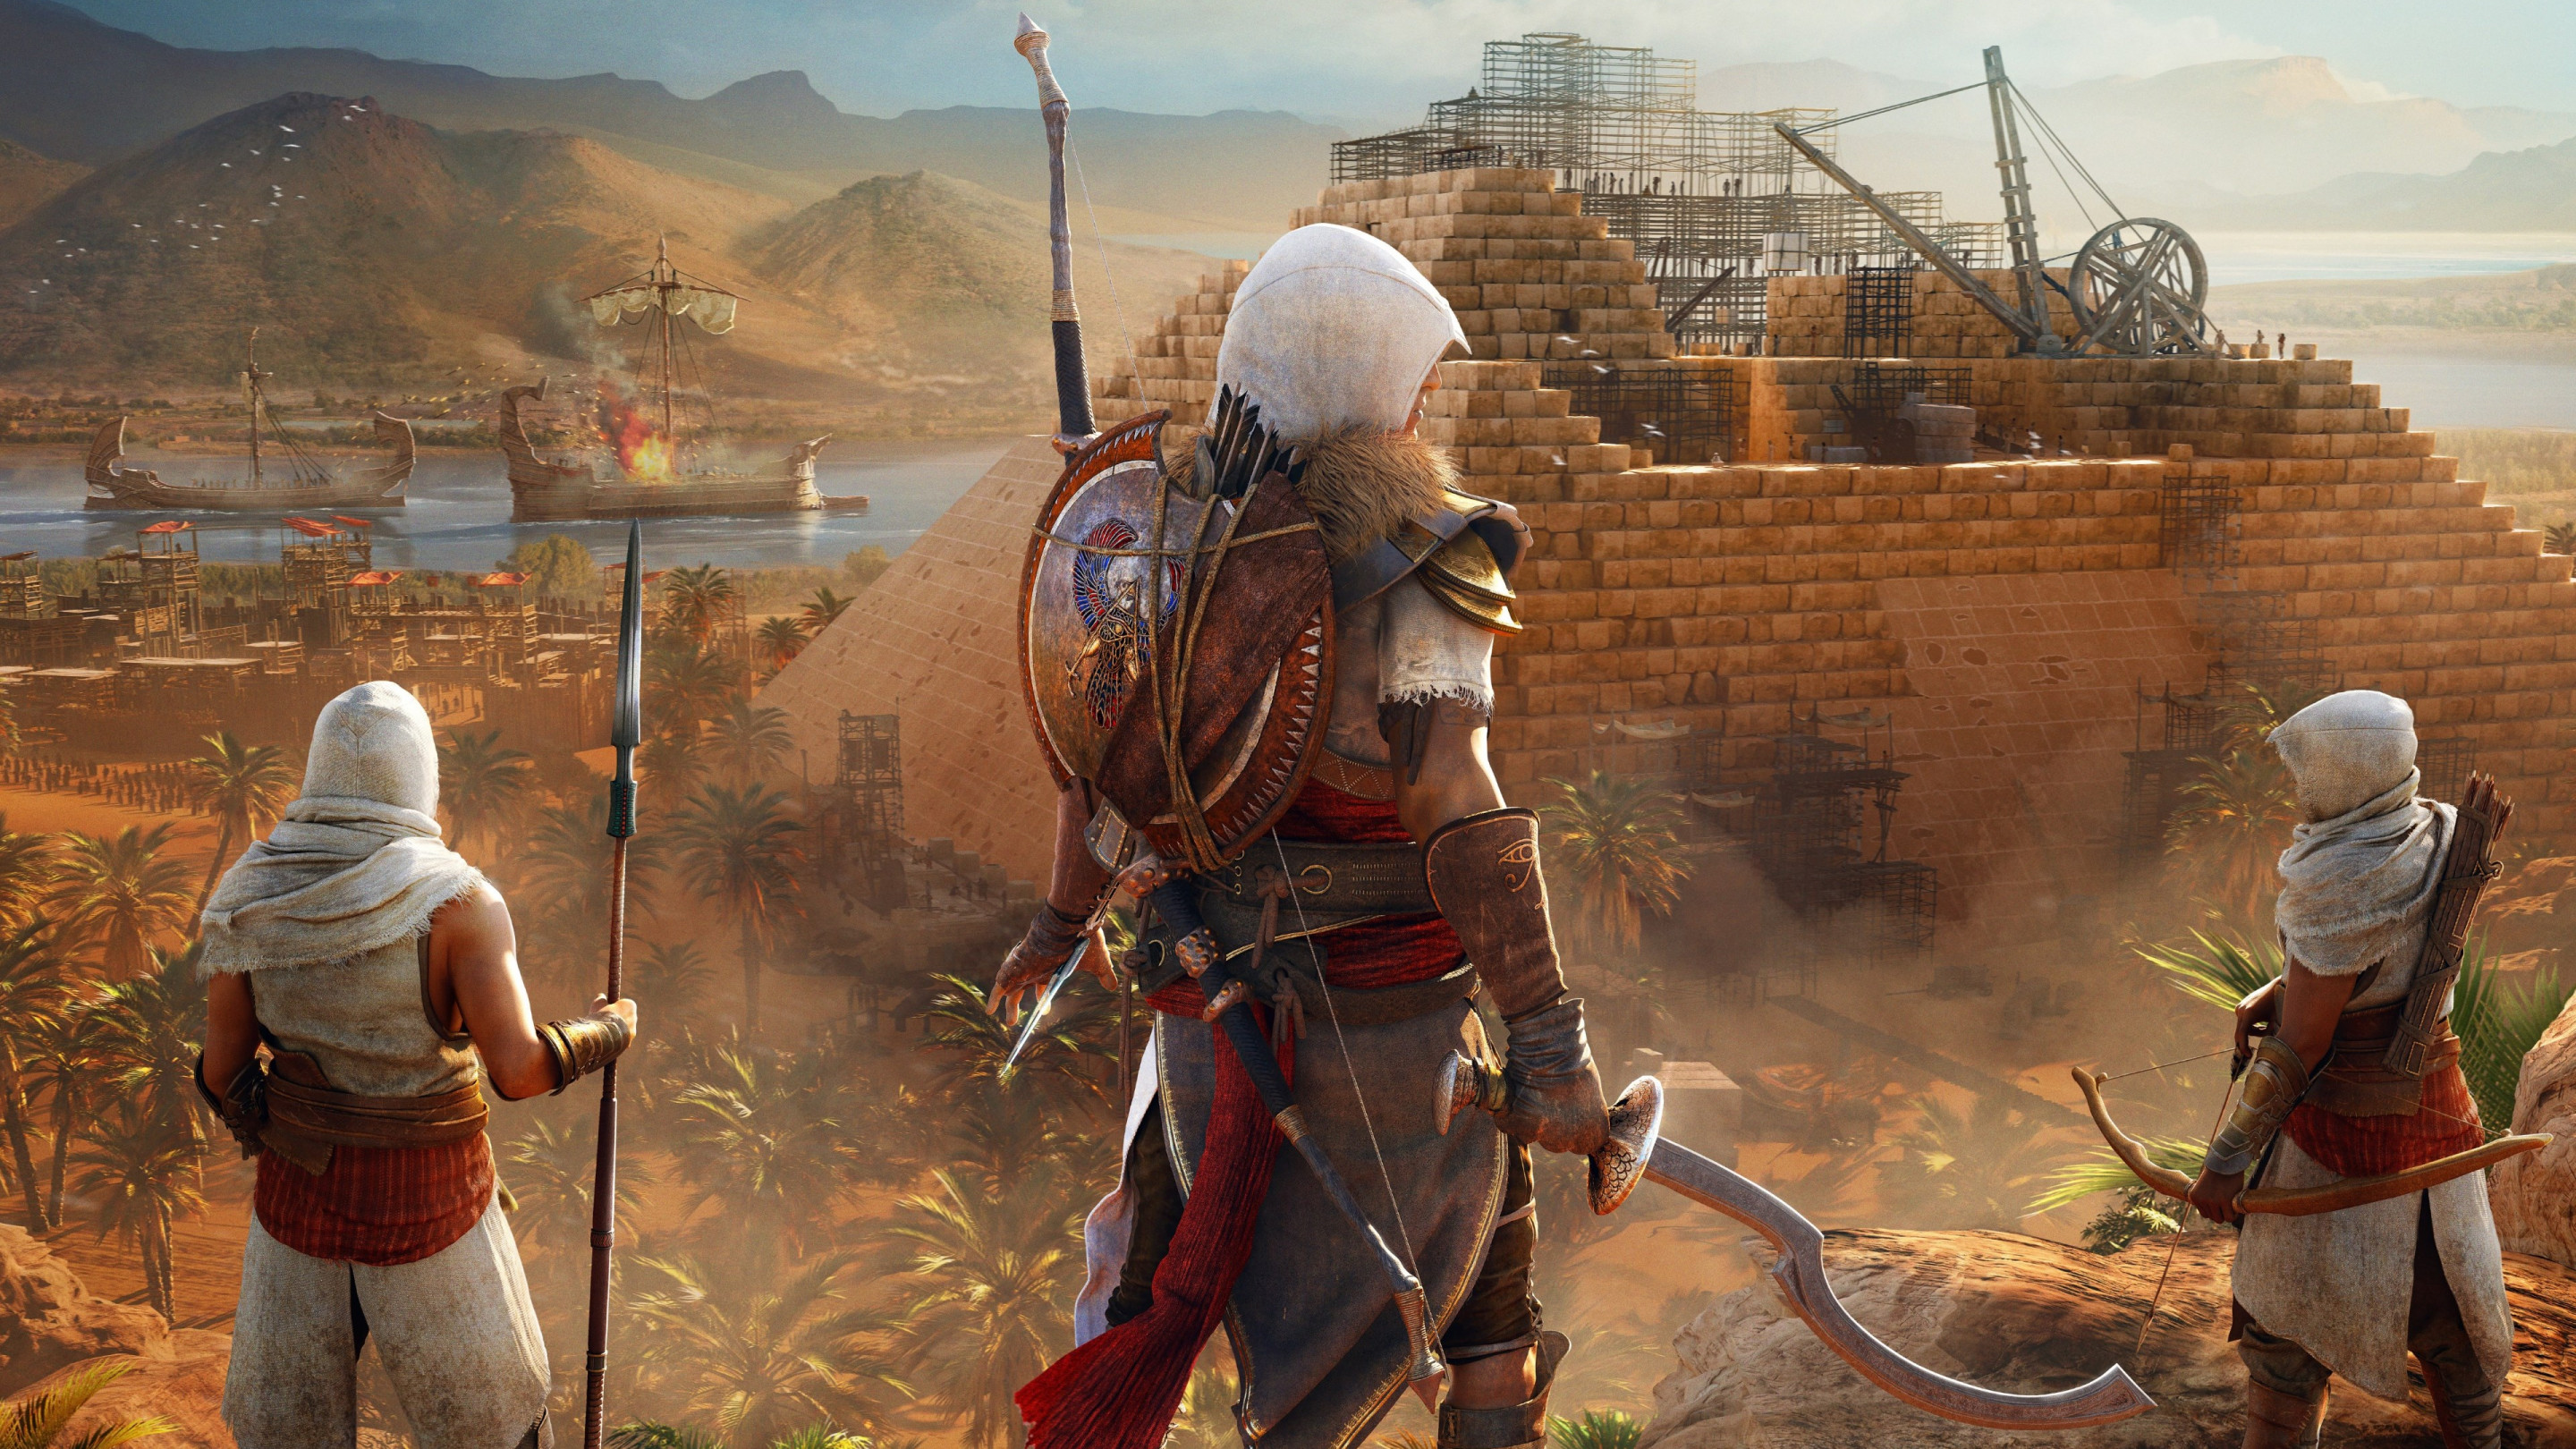 Assassin's Creed Origins: The Hidden Ones wallpaper 2880x1620